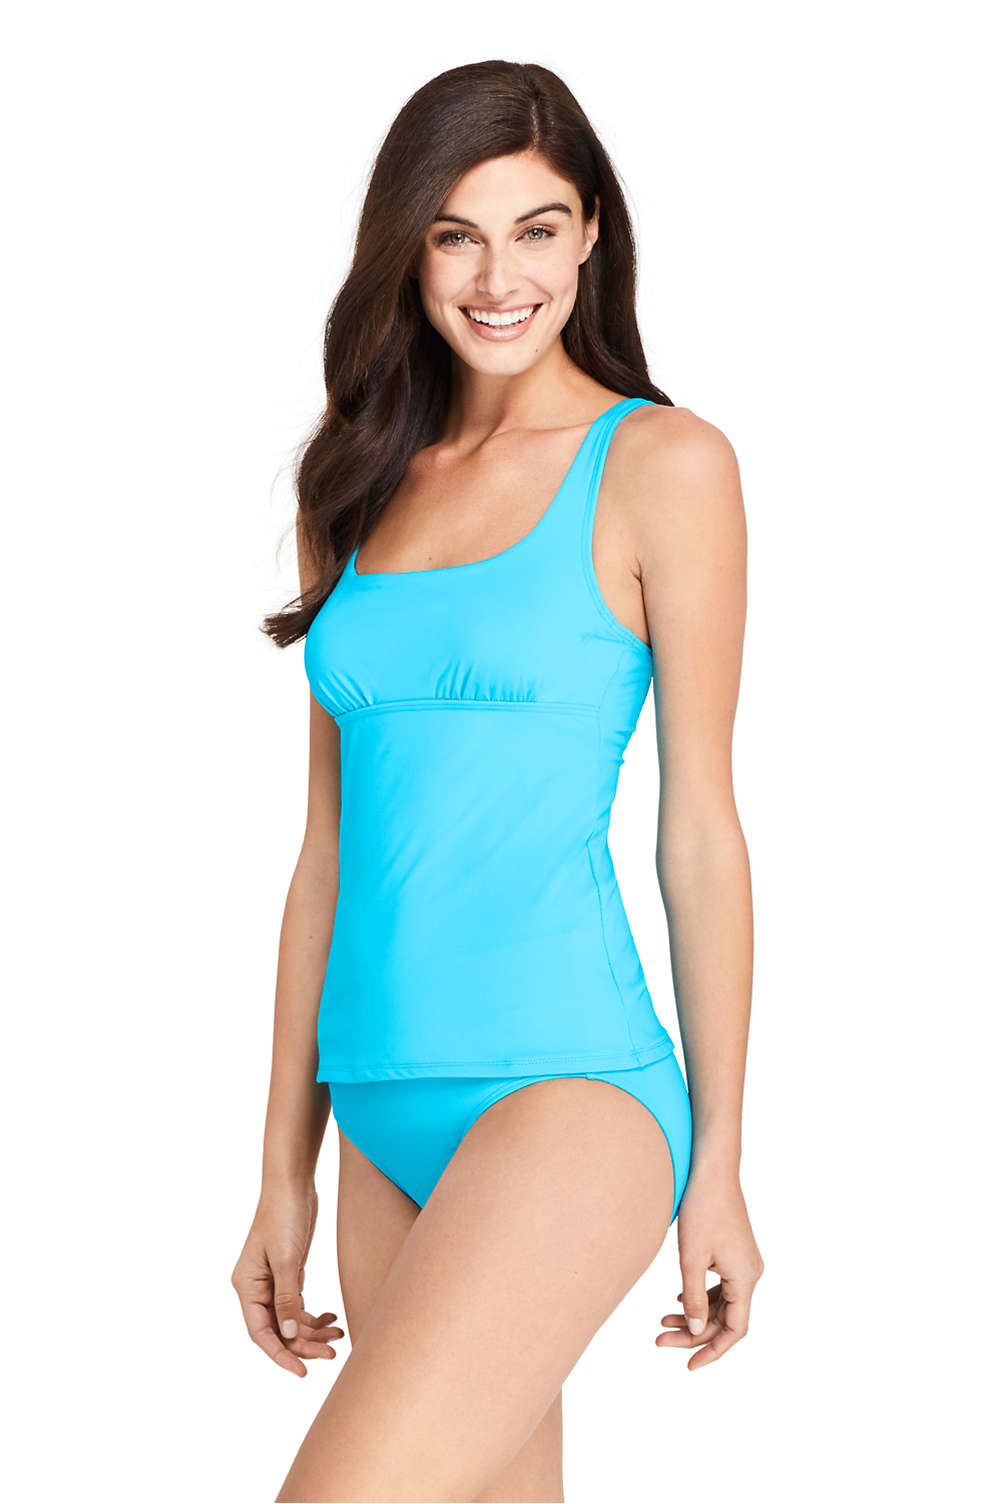 a54f8c17422be Women's Chlorine Resistant Square Neck Underwire Tankini Top Swimsuit from  Lands' End